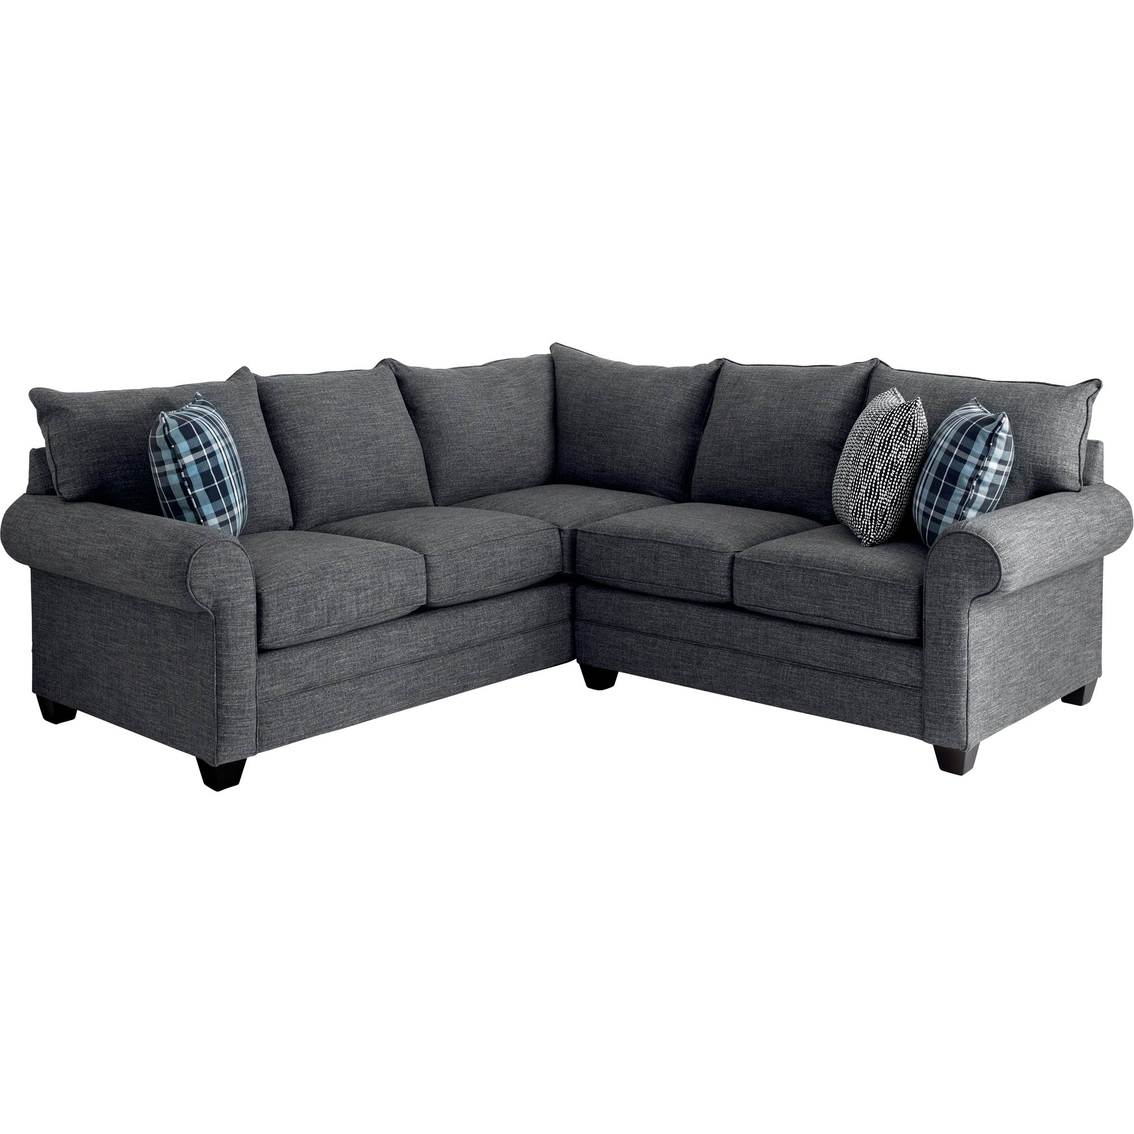 Bassett Alex 2 Pc. Sectional | Sofas & Couches | Home & Appliances ...